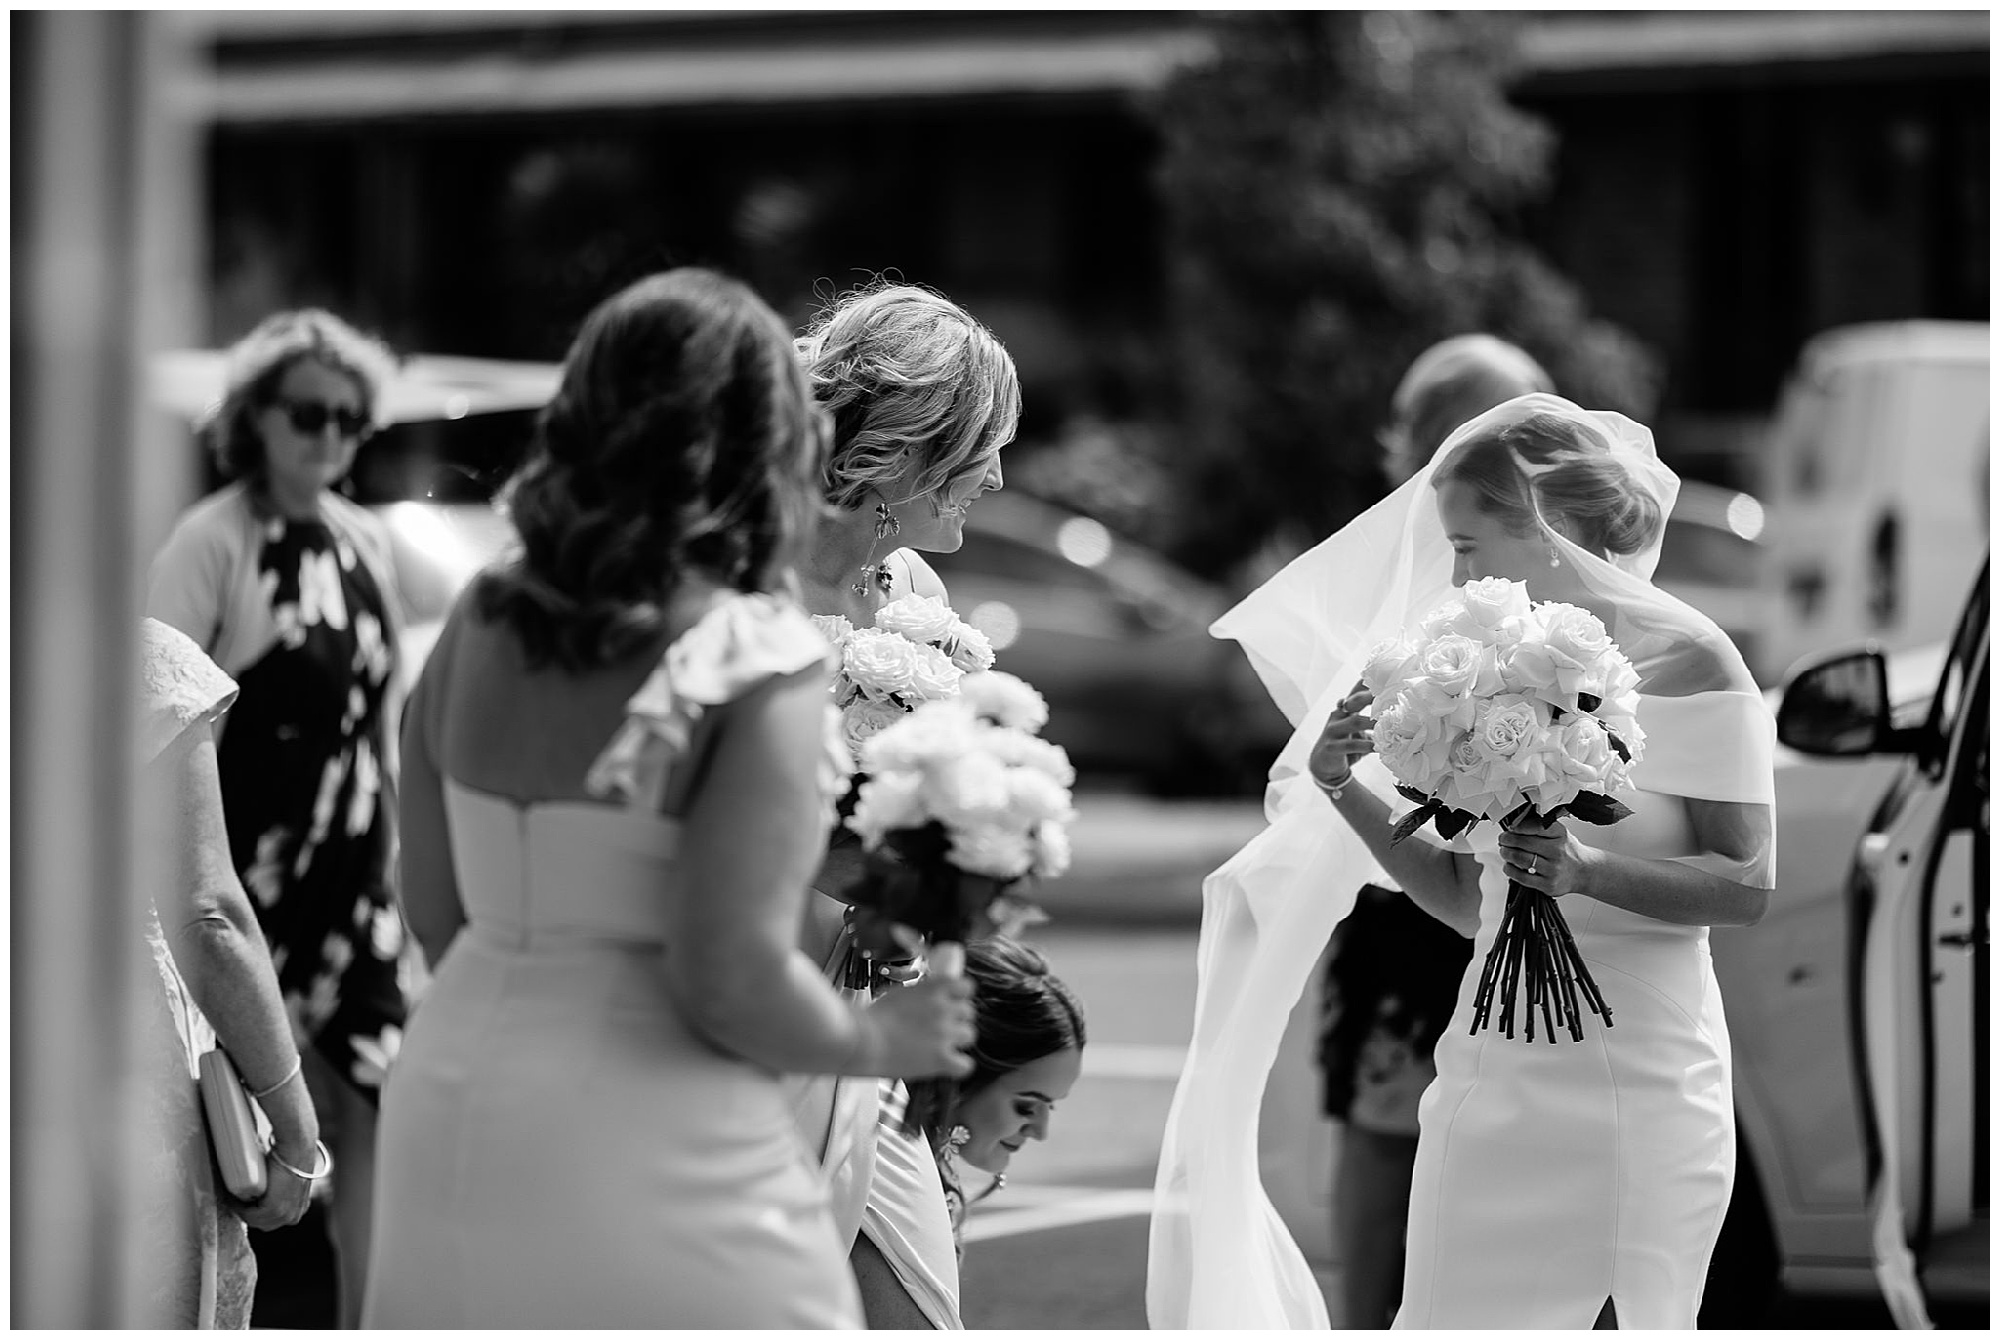 ACT wedding photographer,canberra wedding,canberra wedding photographer,canberra wedding photography,country wedding,keepsakephoto by the keeffes,The Old Coach Stables,Summer wedding,